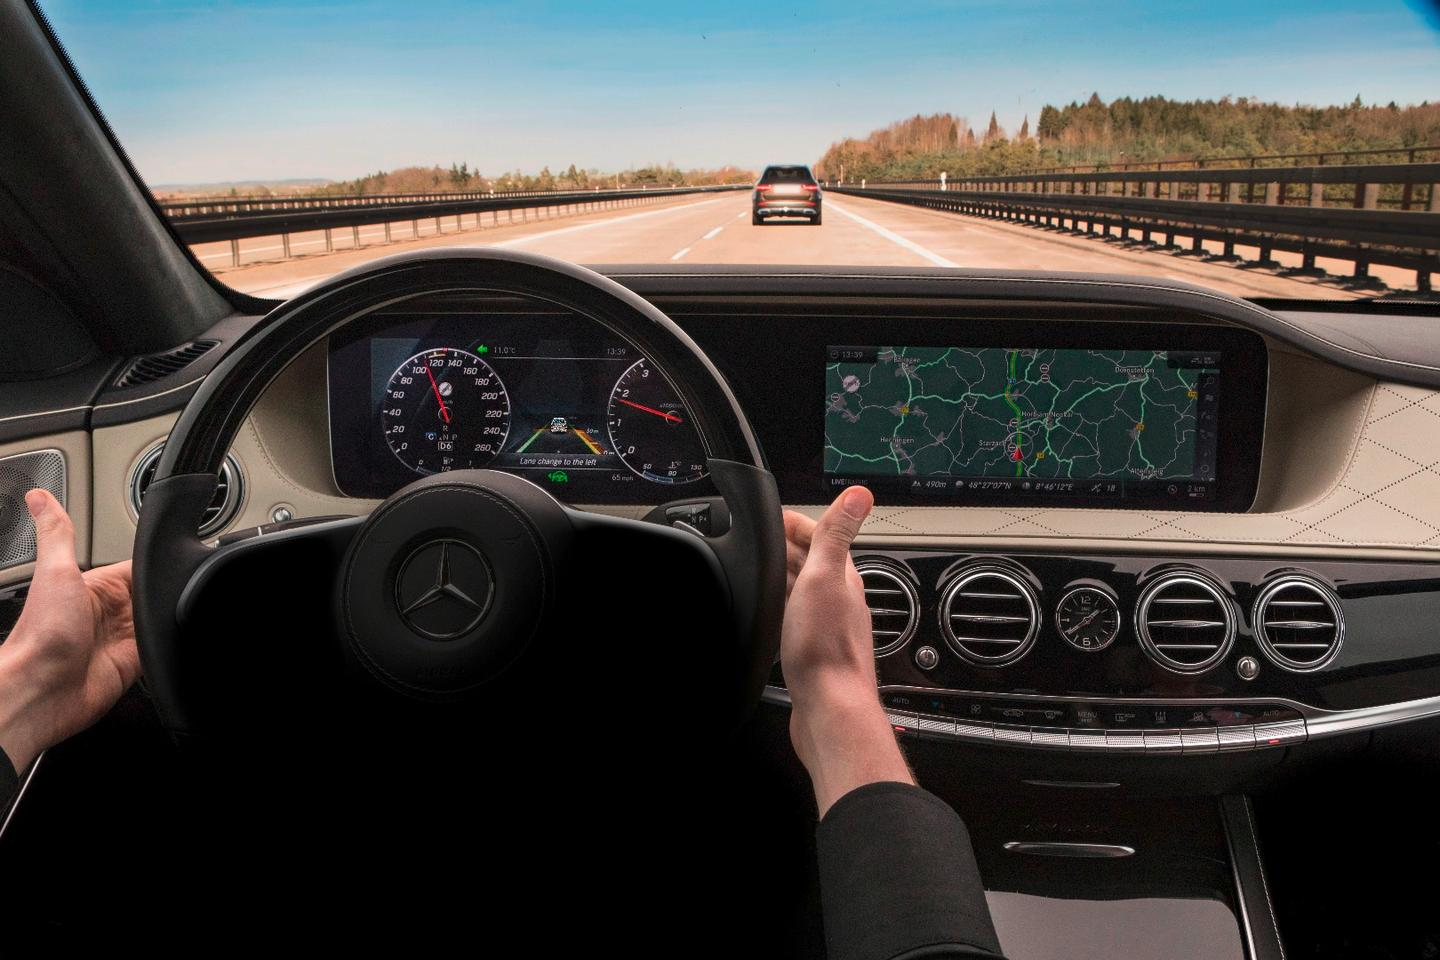 Hand-free motoring takes another step forward in the upcoming Mercedes S-Class